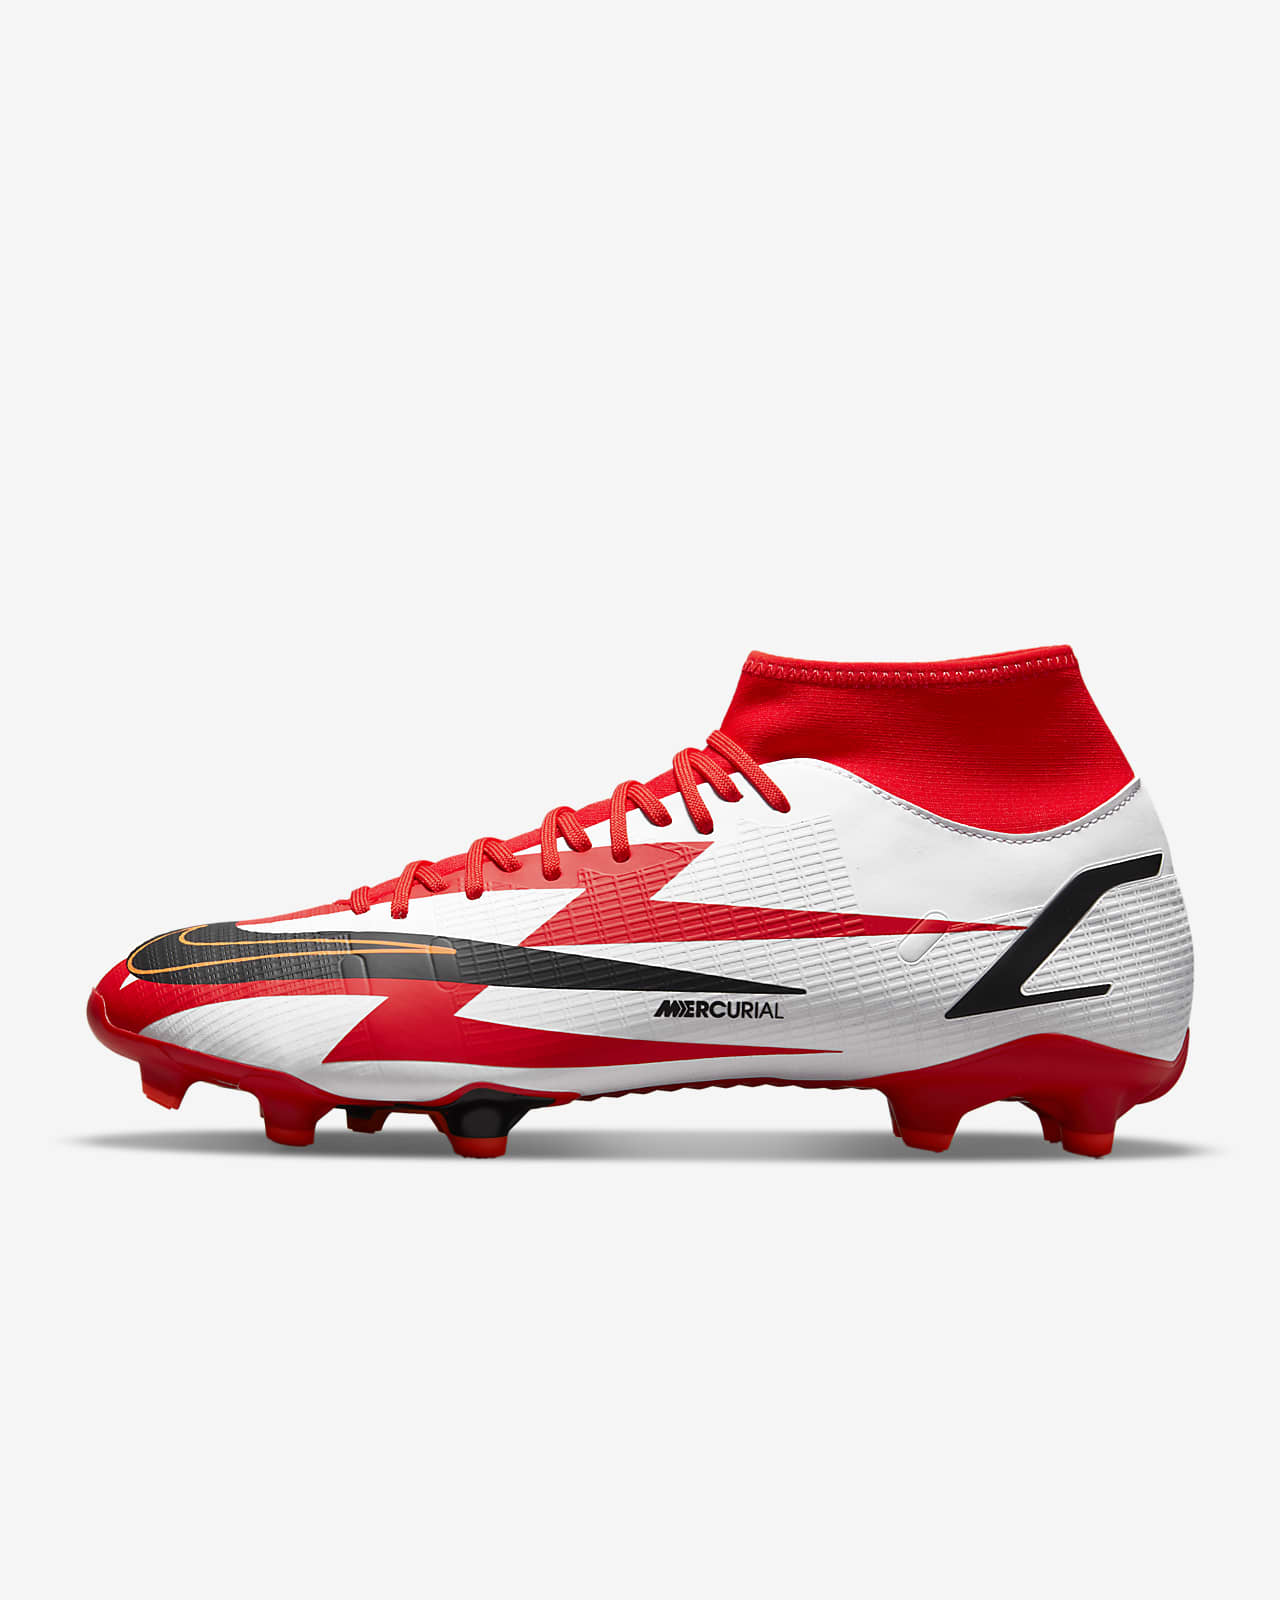 Nike Mercurial Superfly 8 Academy CR7 MG Multi-Ground Soccer Cleats